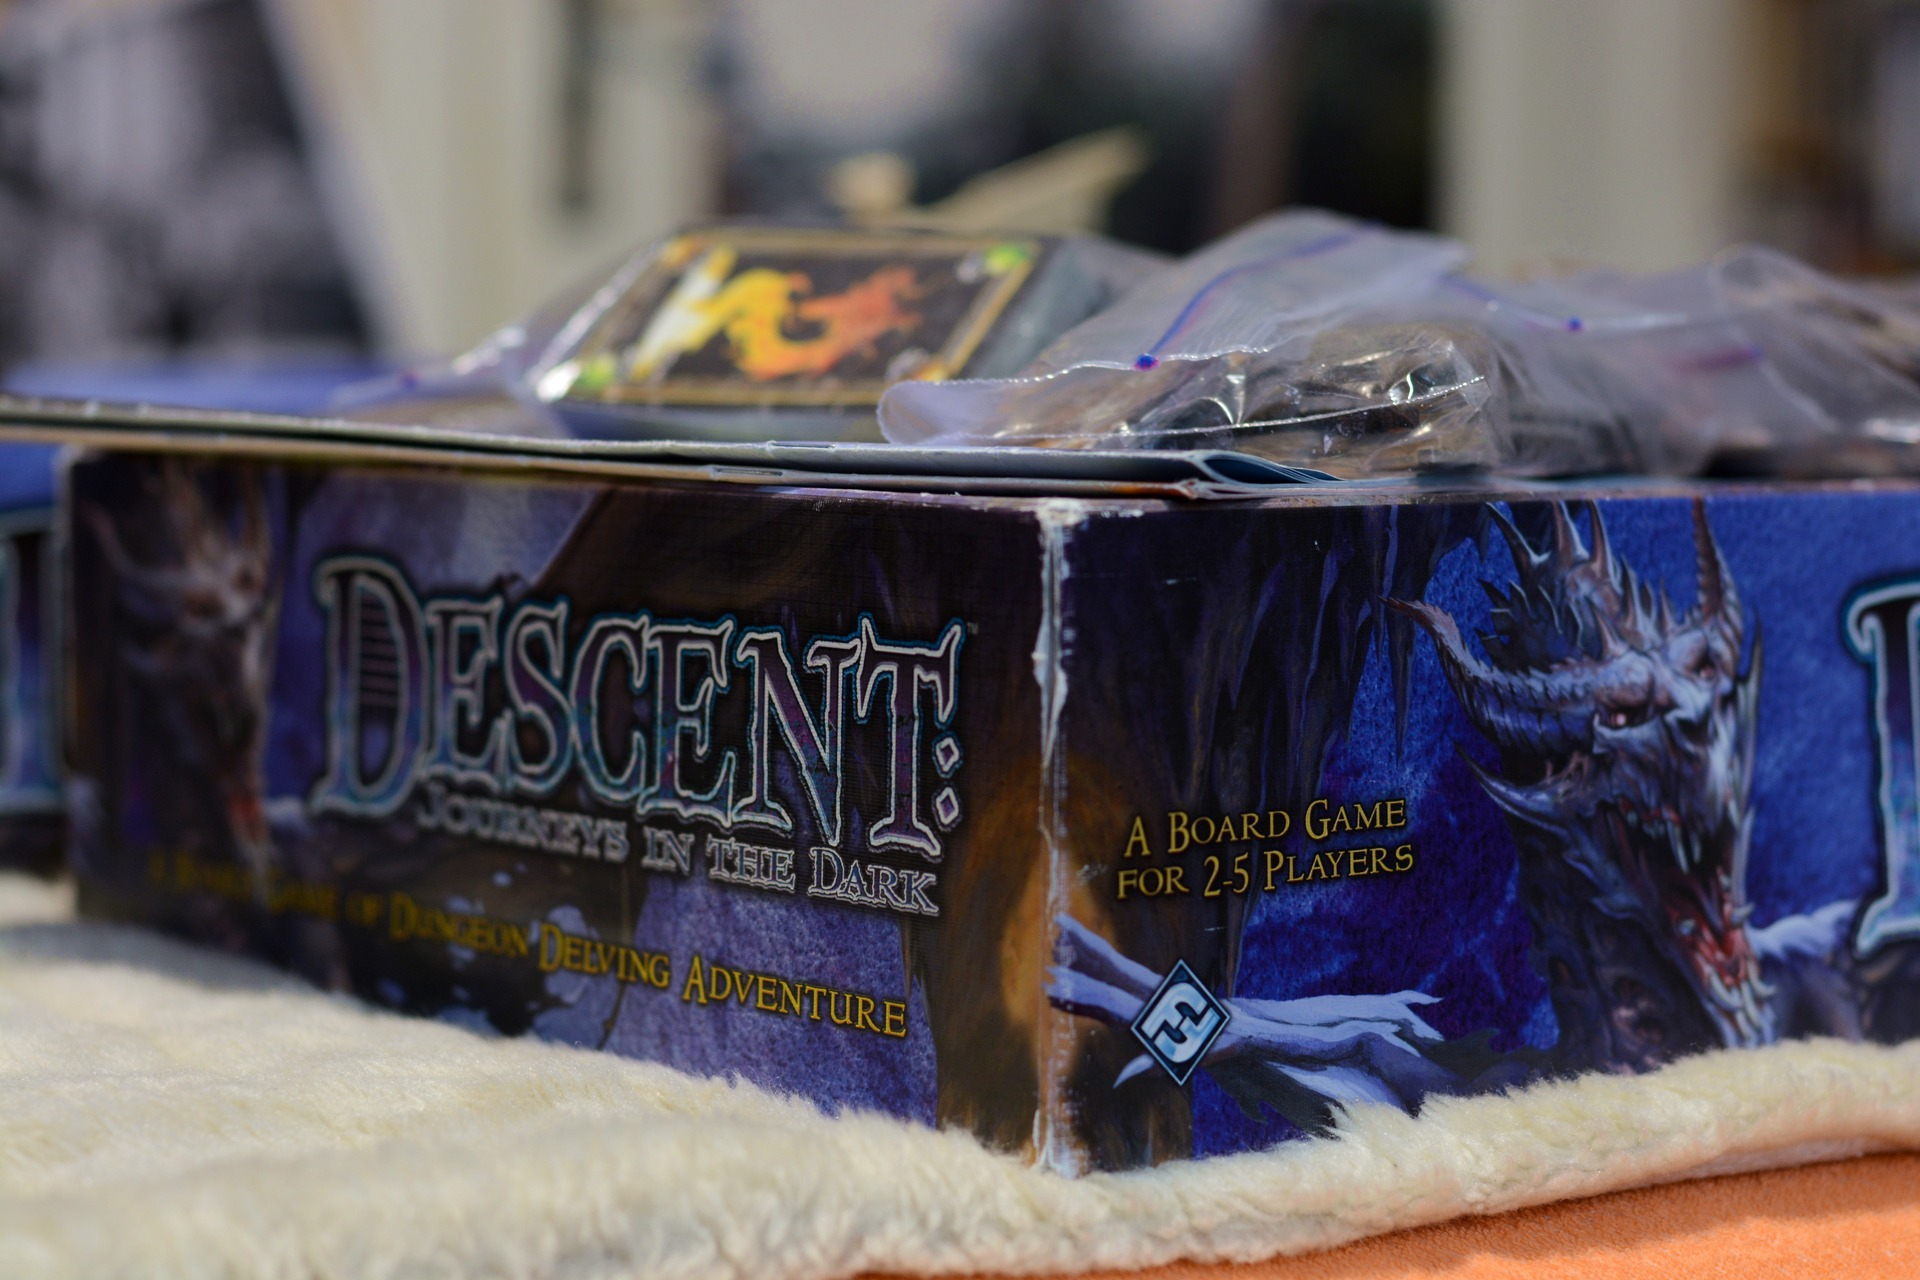 Descent Brettspiel